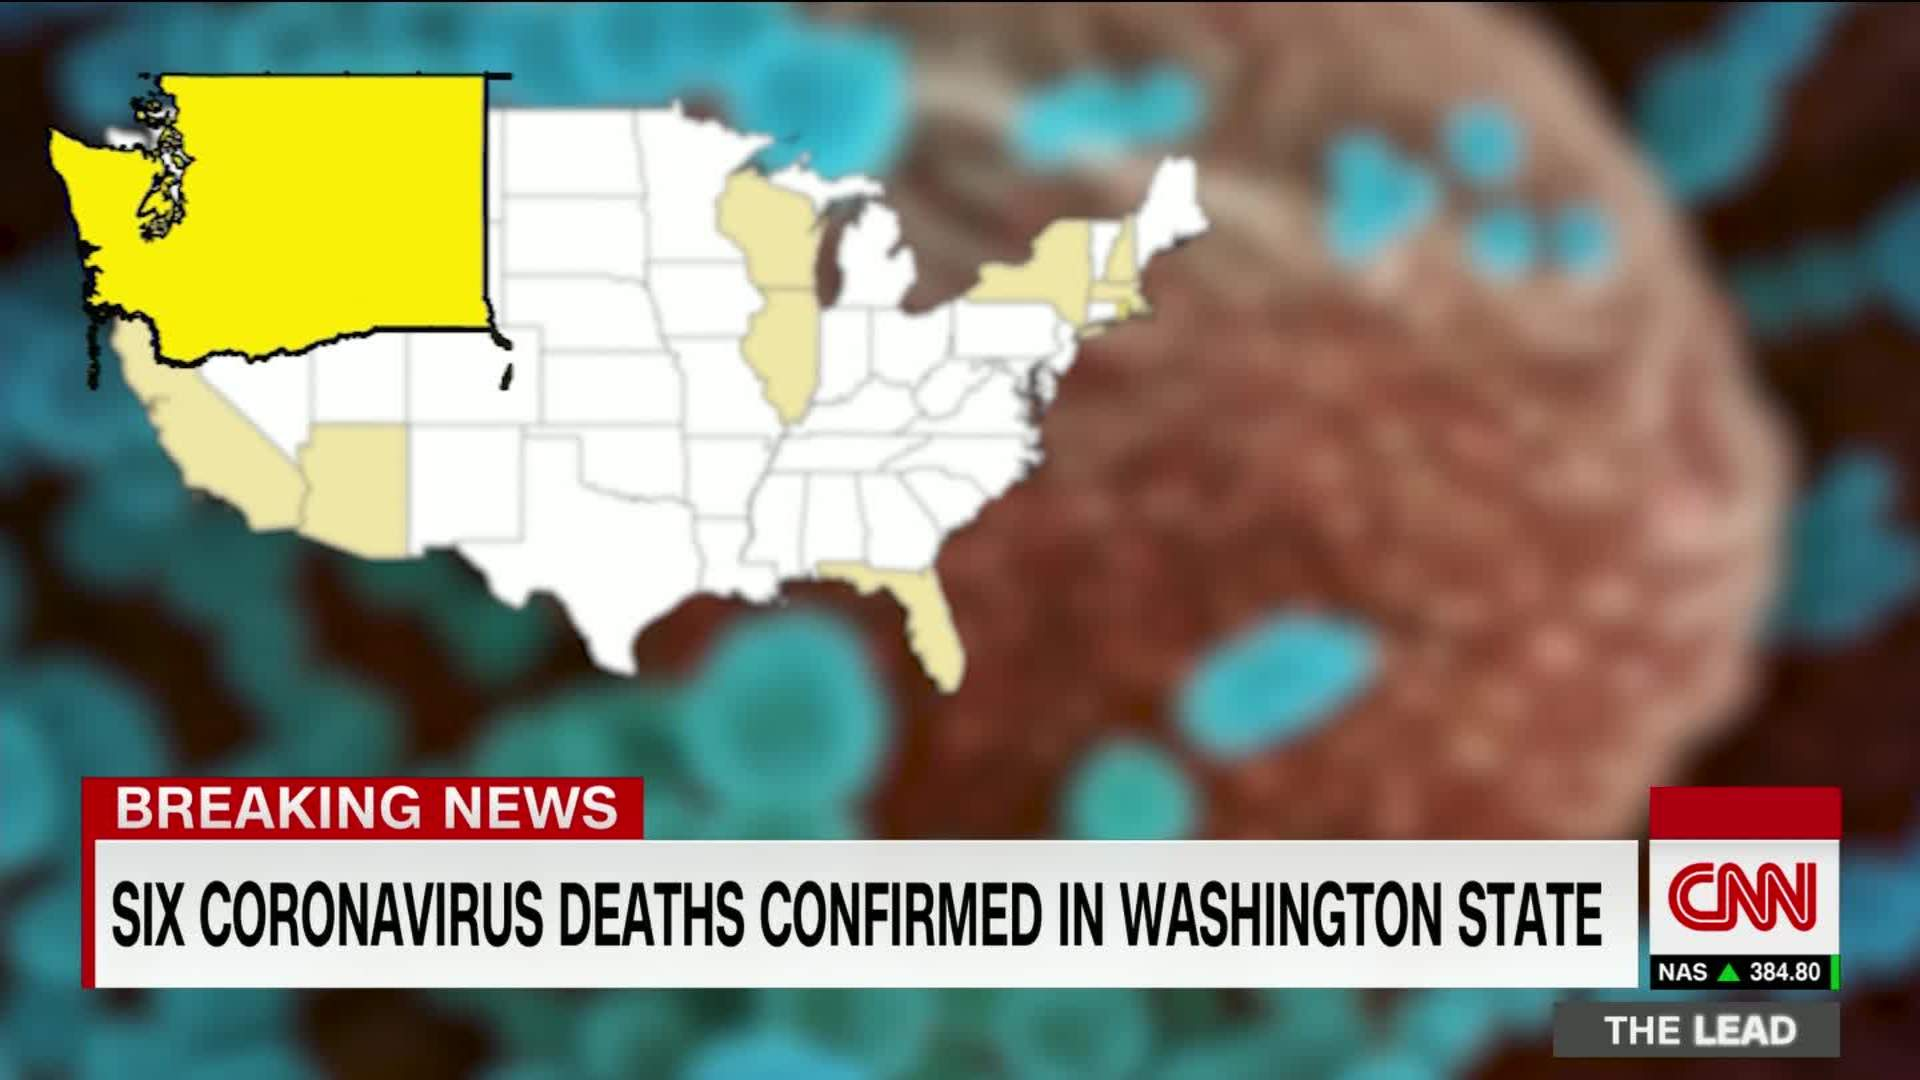 U.S. coronavirus death toll now at least 6, with more than 100 ...